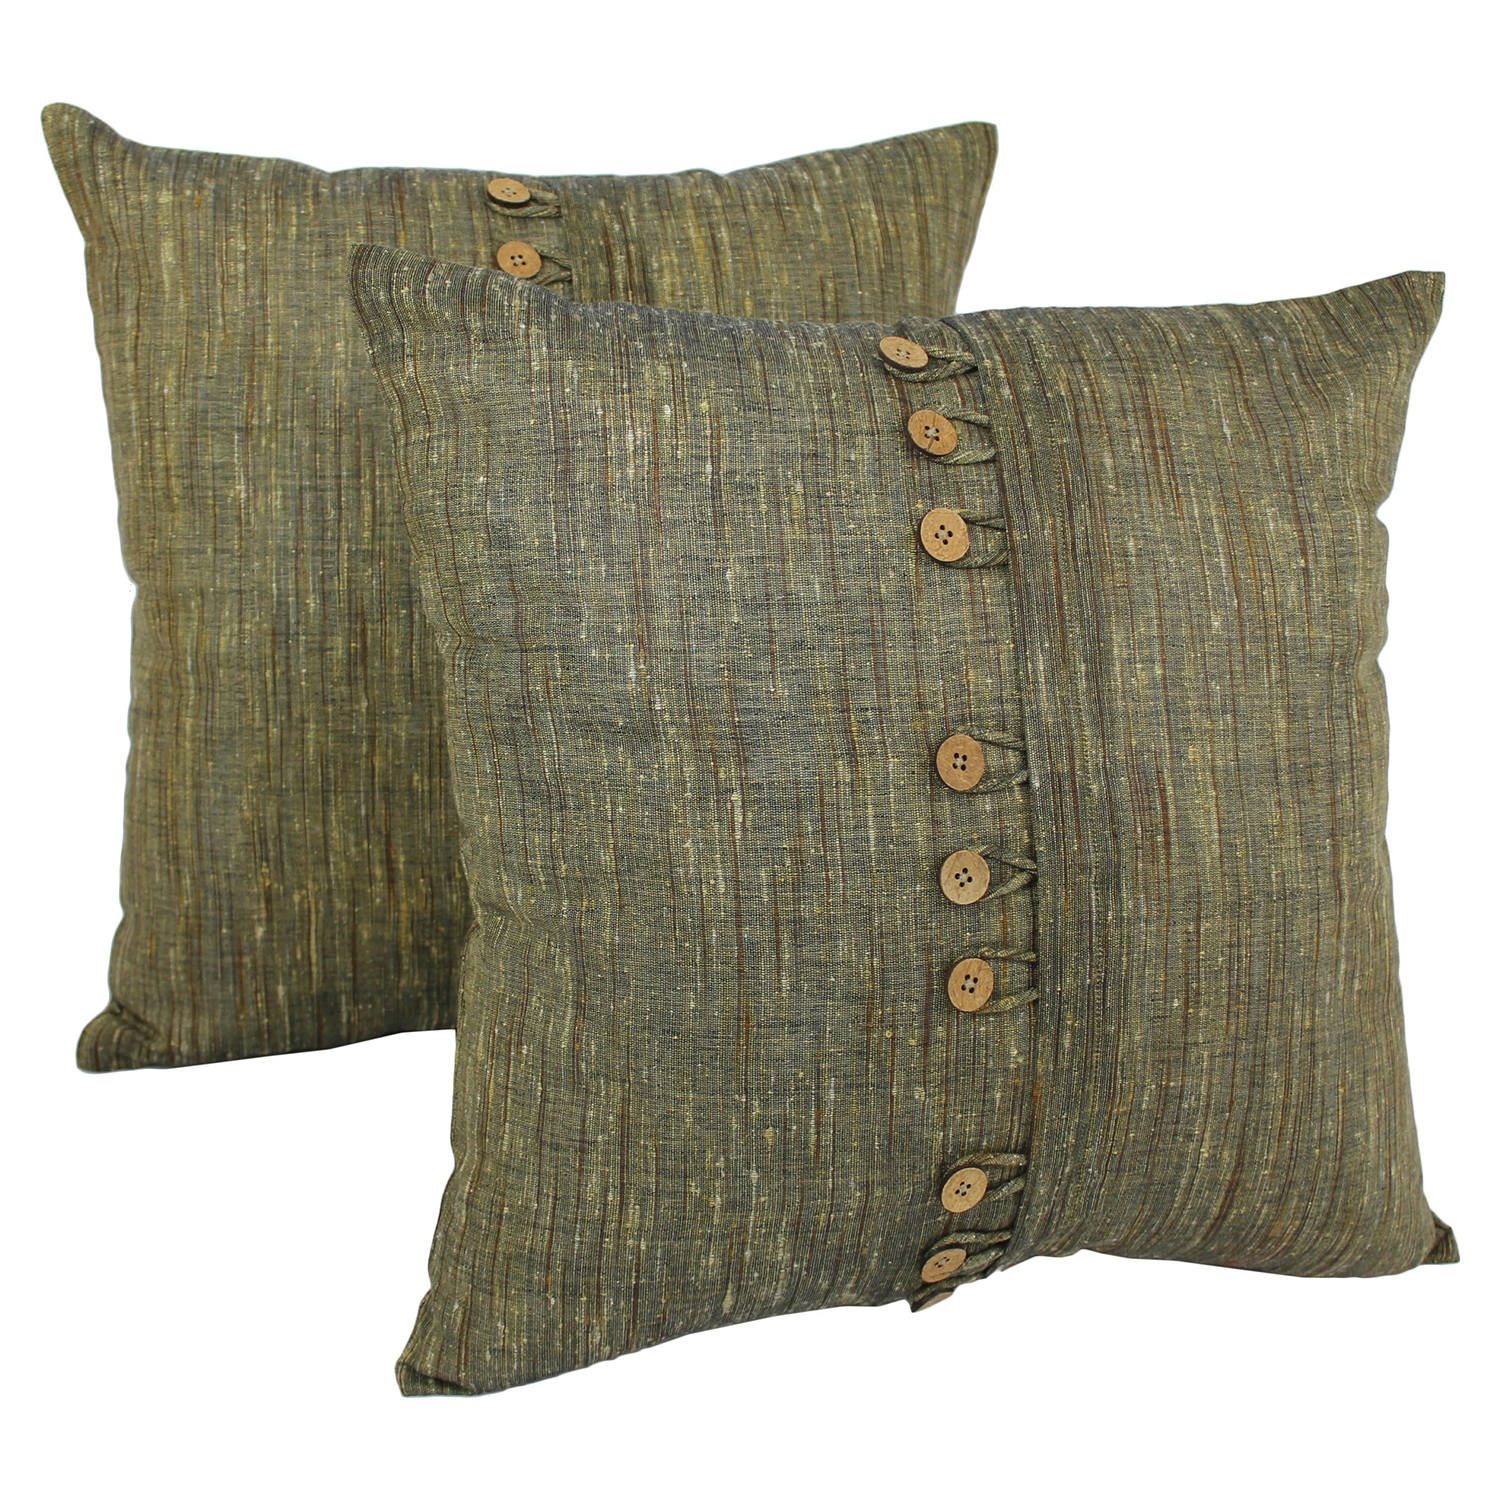 "9-Button 20"" Throw Pillows - Sage (Set of 2)"